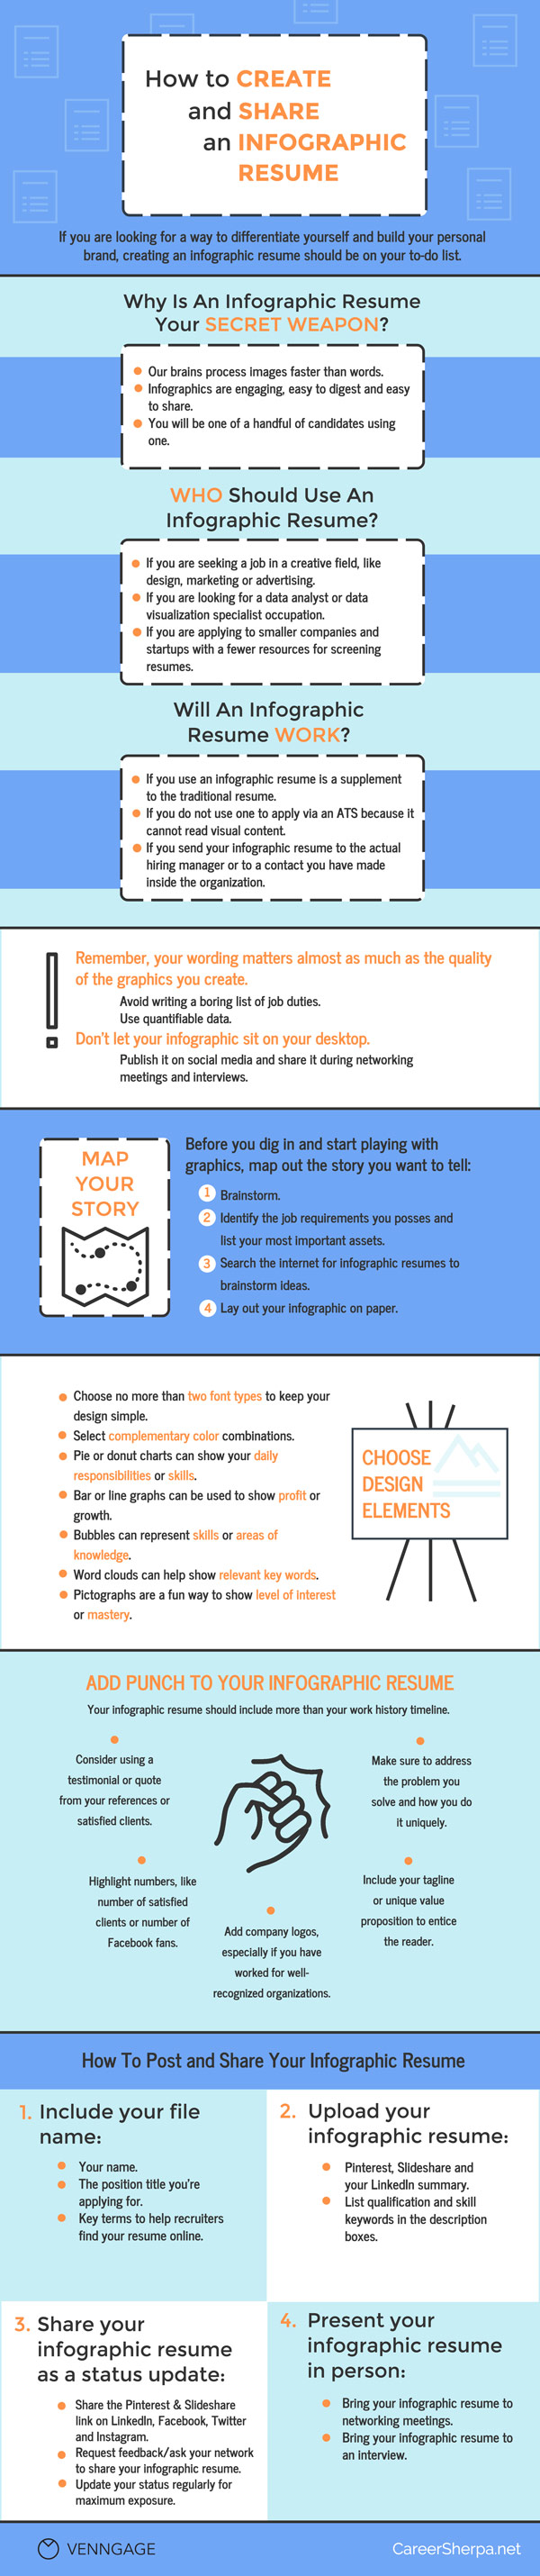 Can An Infographic Resume Help You Stand Out In The Talent Pool - Infographic-resume